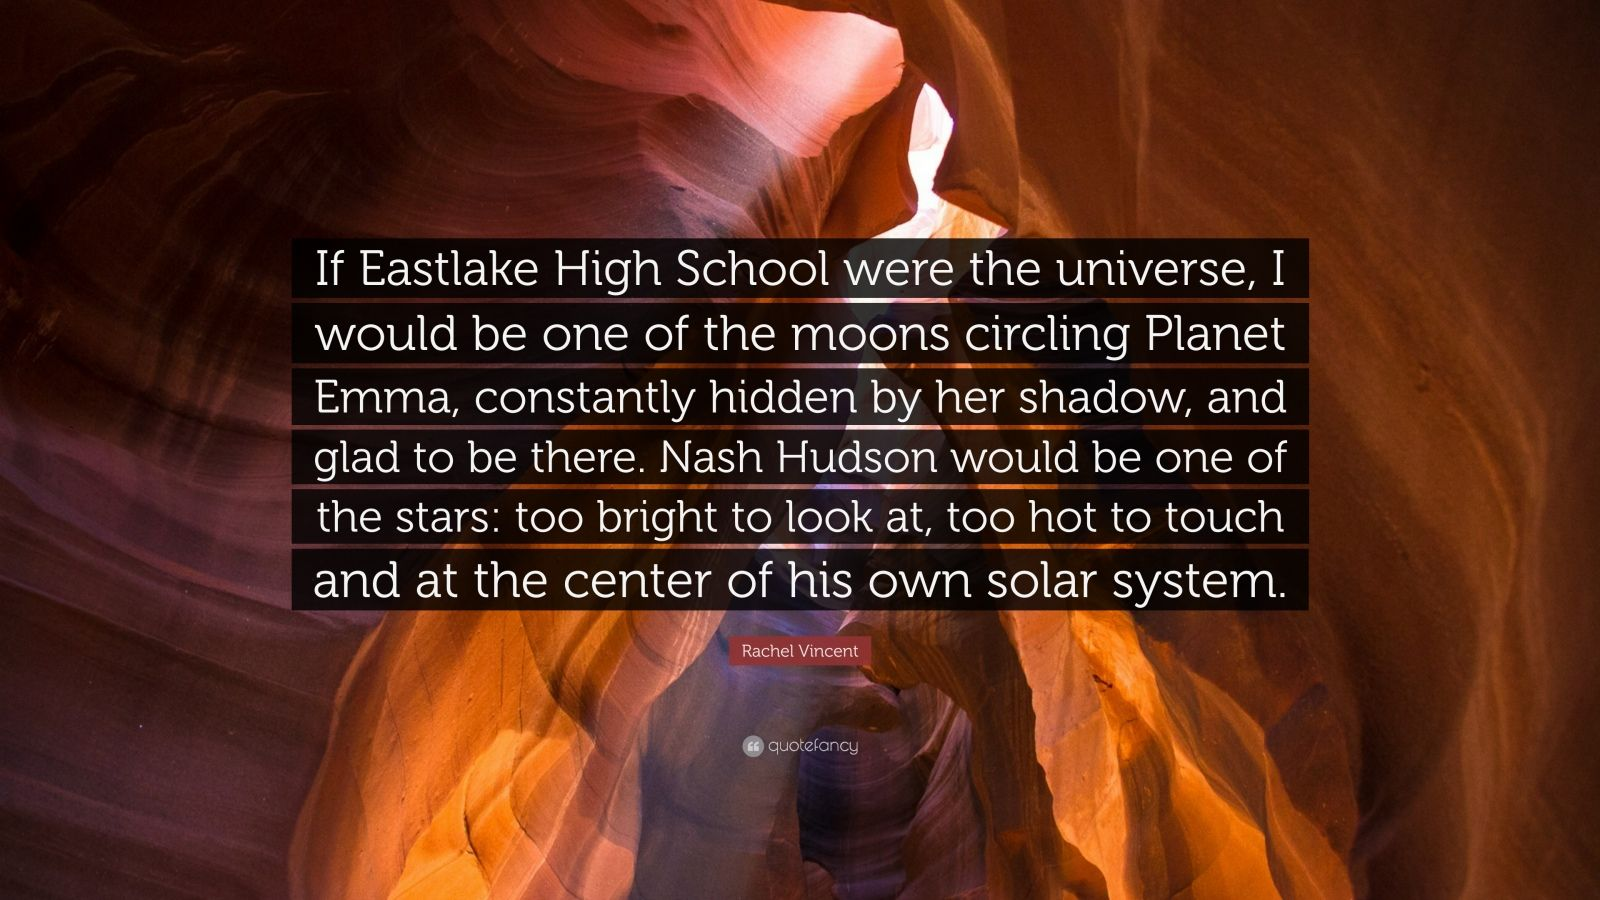 """Rachel Vincent Quote: """"If Eastlake High School were the universe, I would be one of the moons circling Planet Emma, constantly hidden by her shadow, and glad to be there. Nash Hudson would be one of the stars: too bright to look at, too hot to touch and at the center of his own solar system."""""""